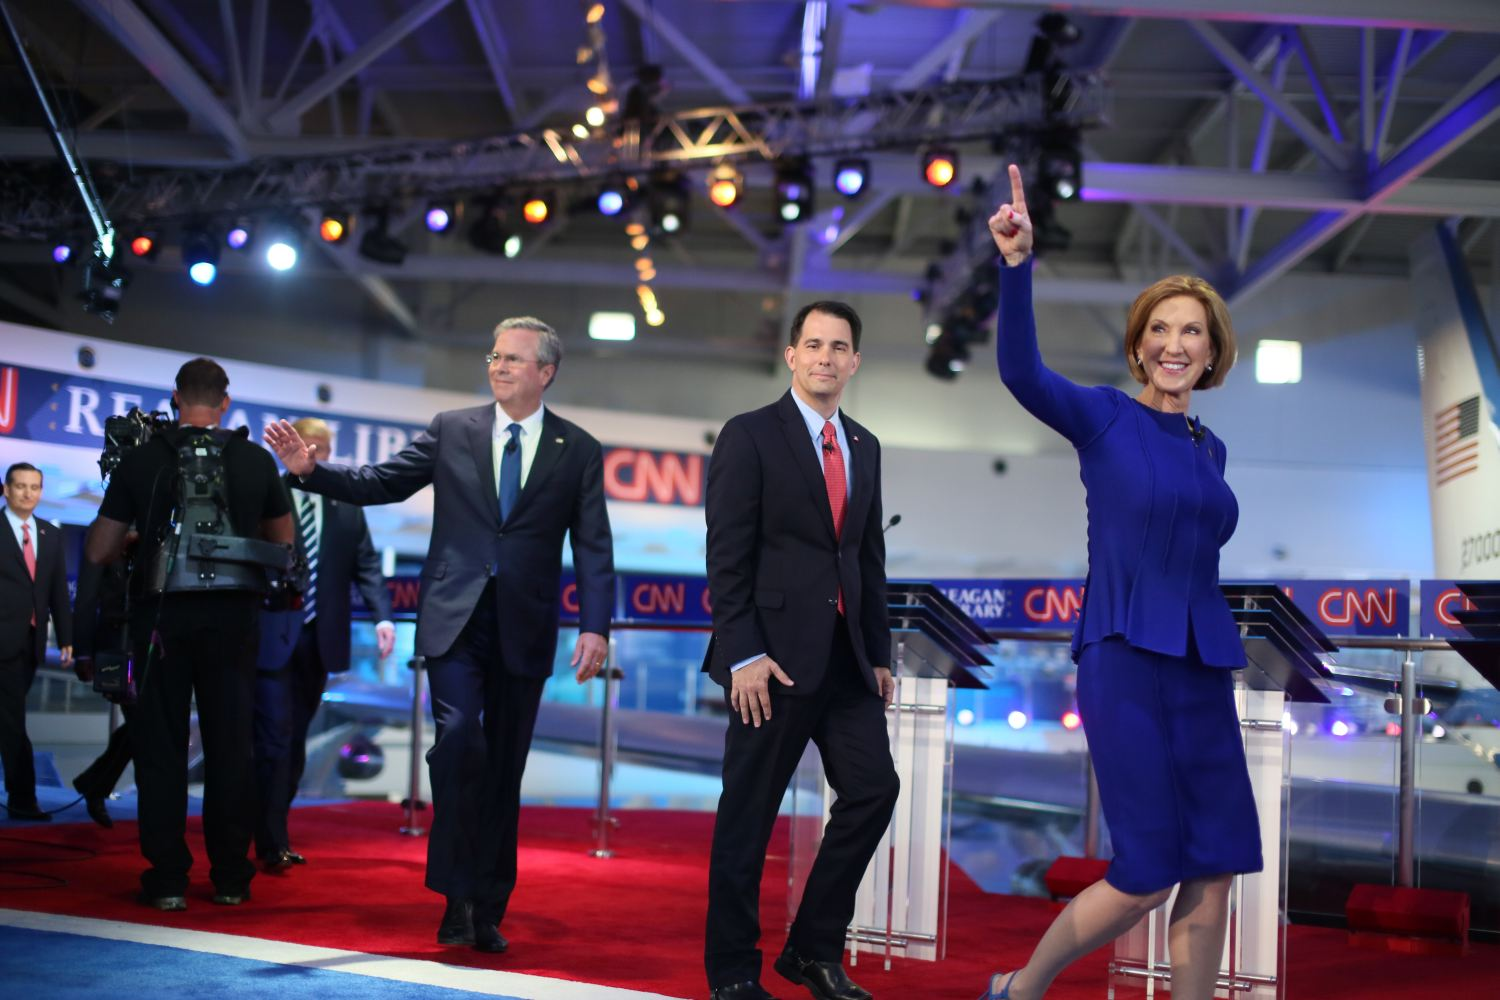 Republican presidential candidates Carly Fiorina, Wisconsin Gov. Scott Walker and Jeb Bush walk onstage at the Reagan Library on Sept. 16, 2015 in Simi Valley, Calif. (Getty Images)